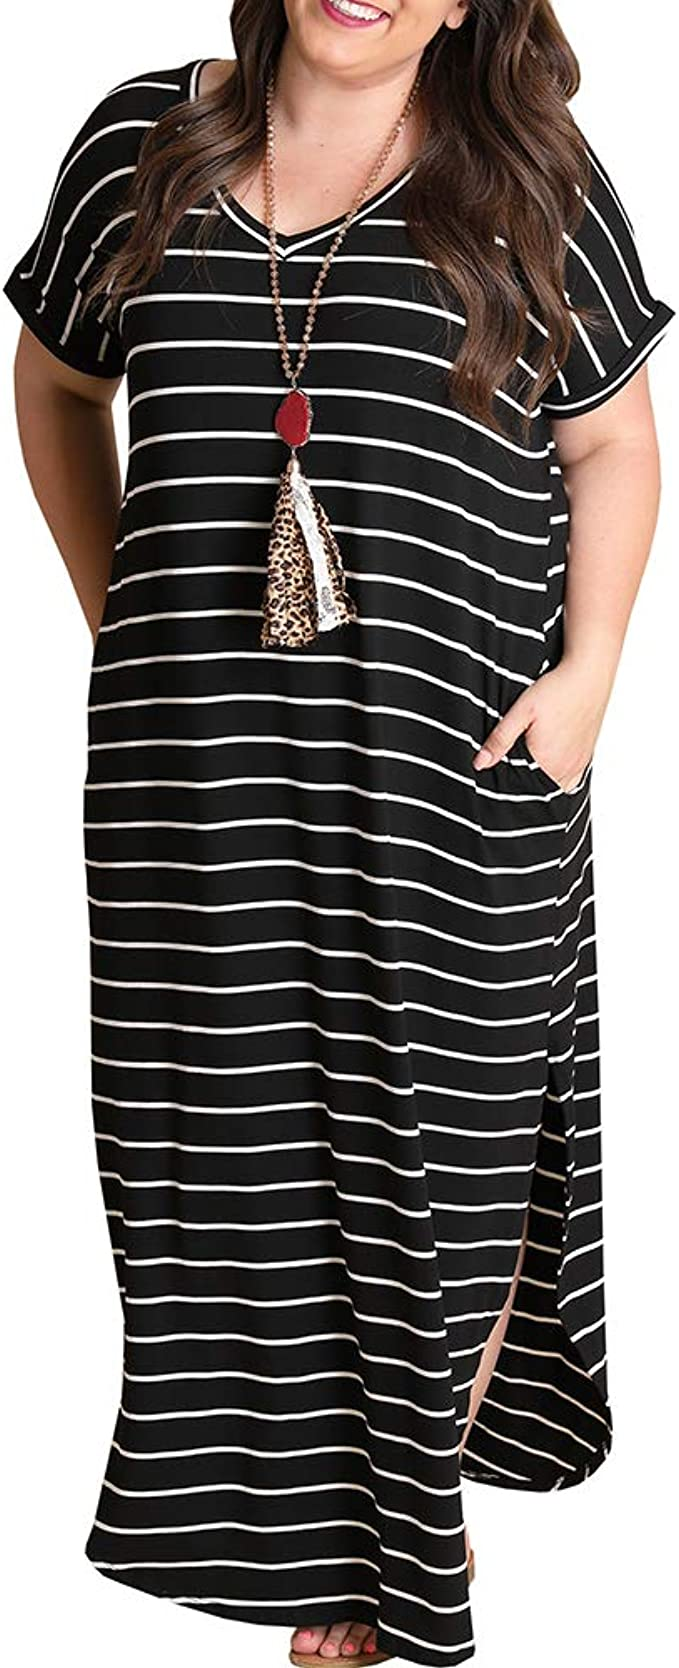 Yskkt Womens Striped V Neck Casual Maxi Dresses Plus Size Short Sleeve T  Shirt Summer Long Dress with Pockets